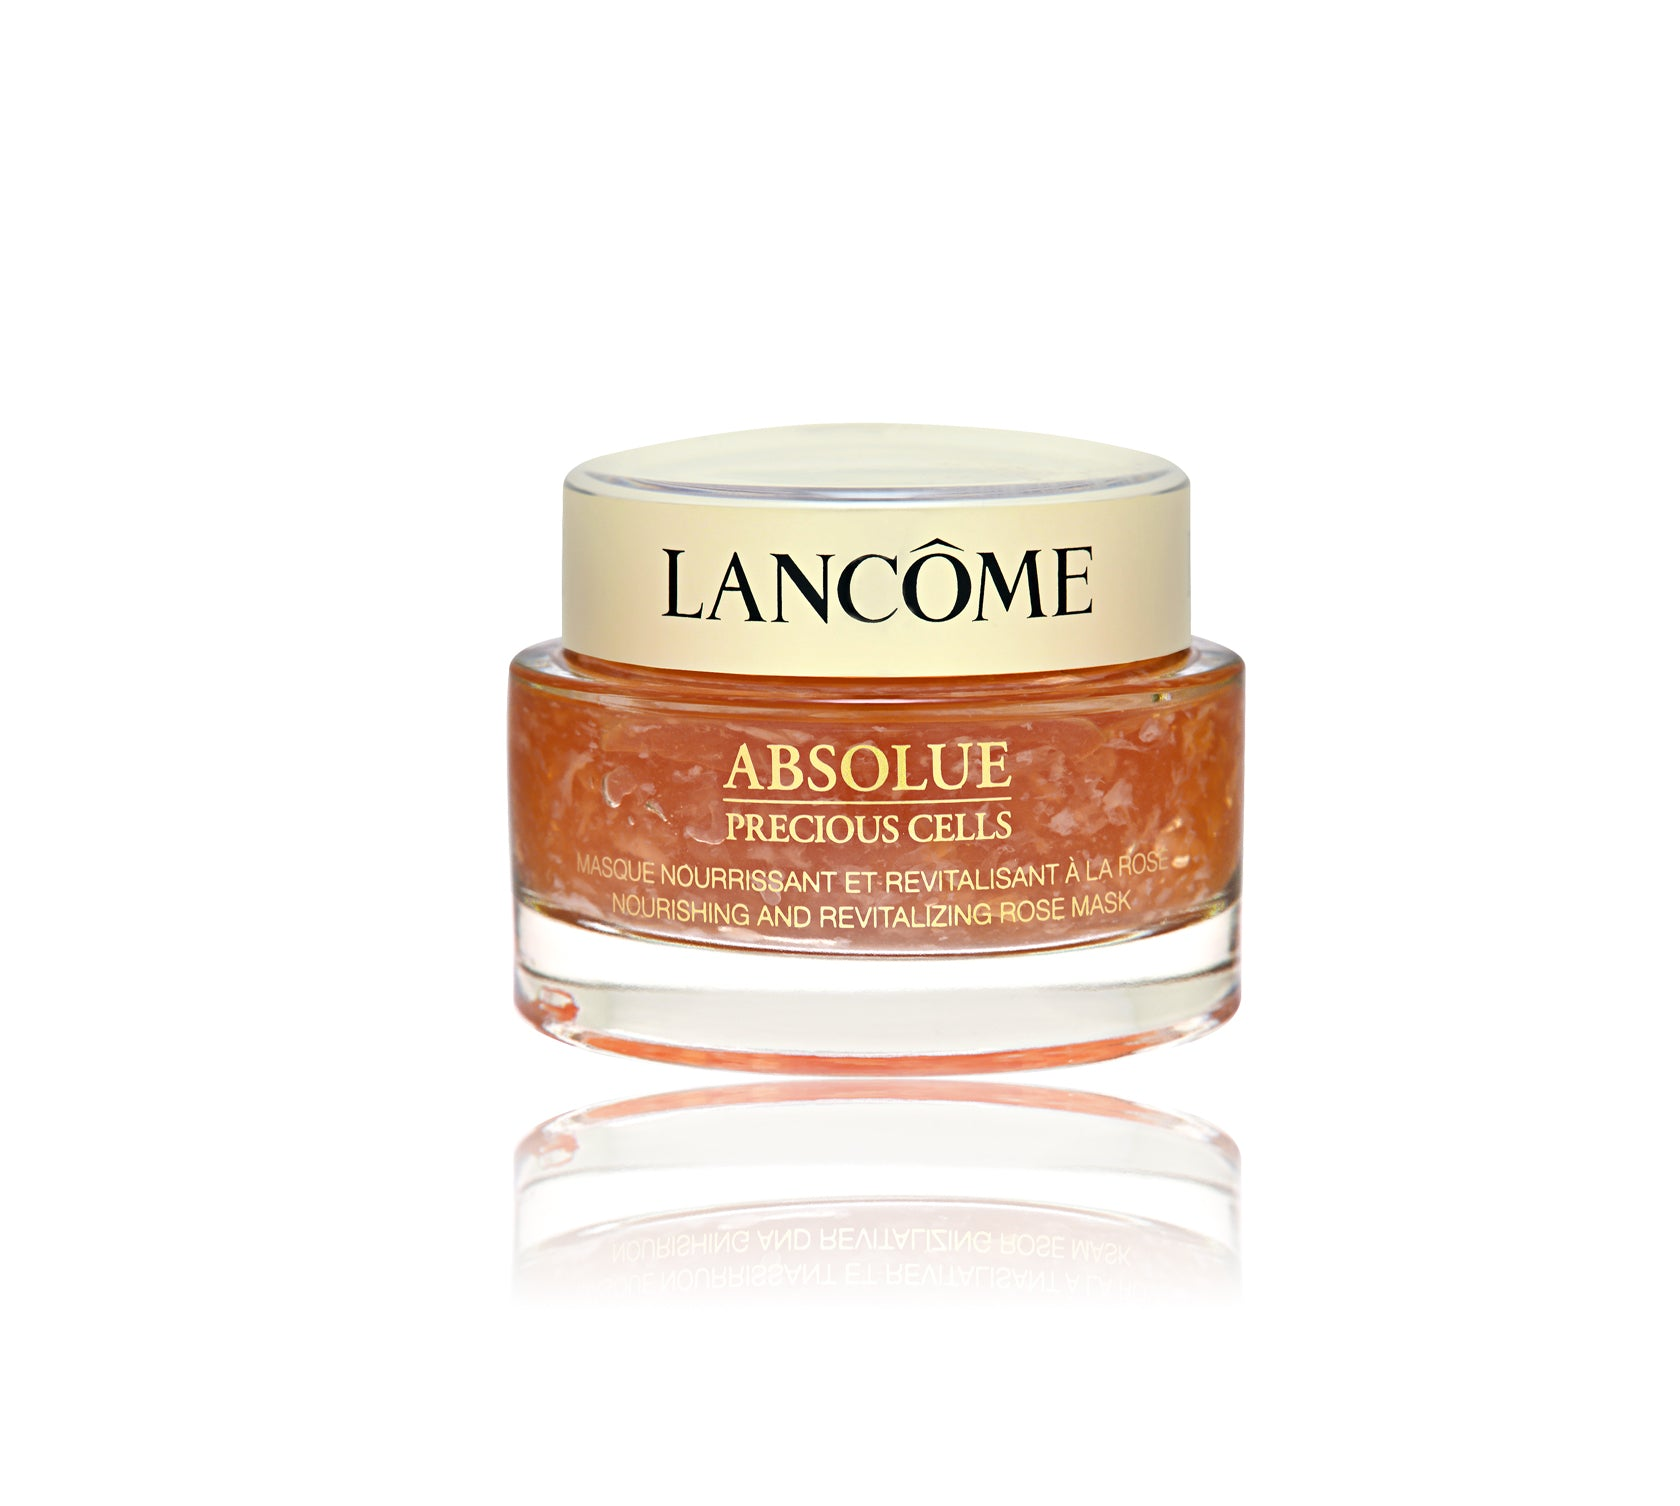 absolue-precious-cells-nourishing-and-revitalizing-rose-mask